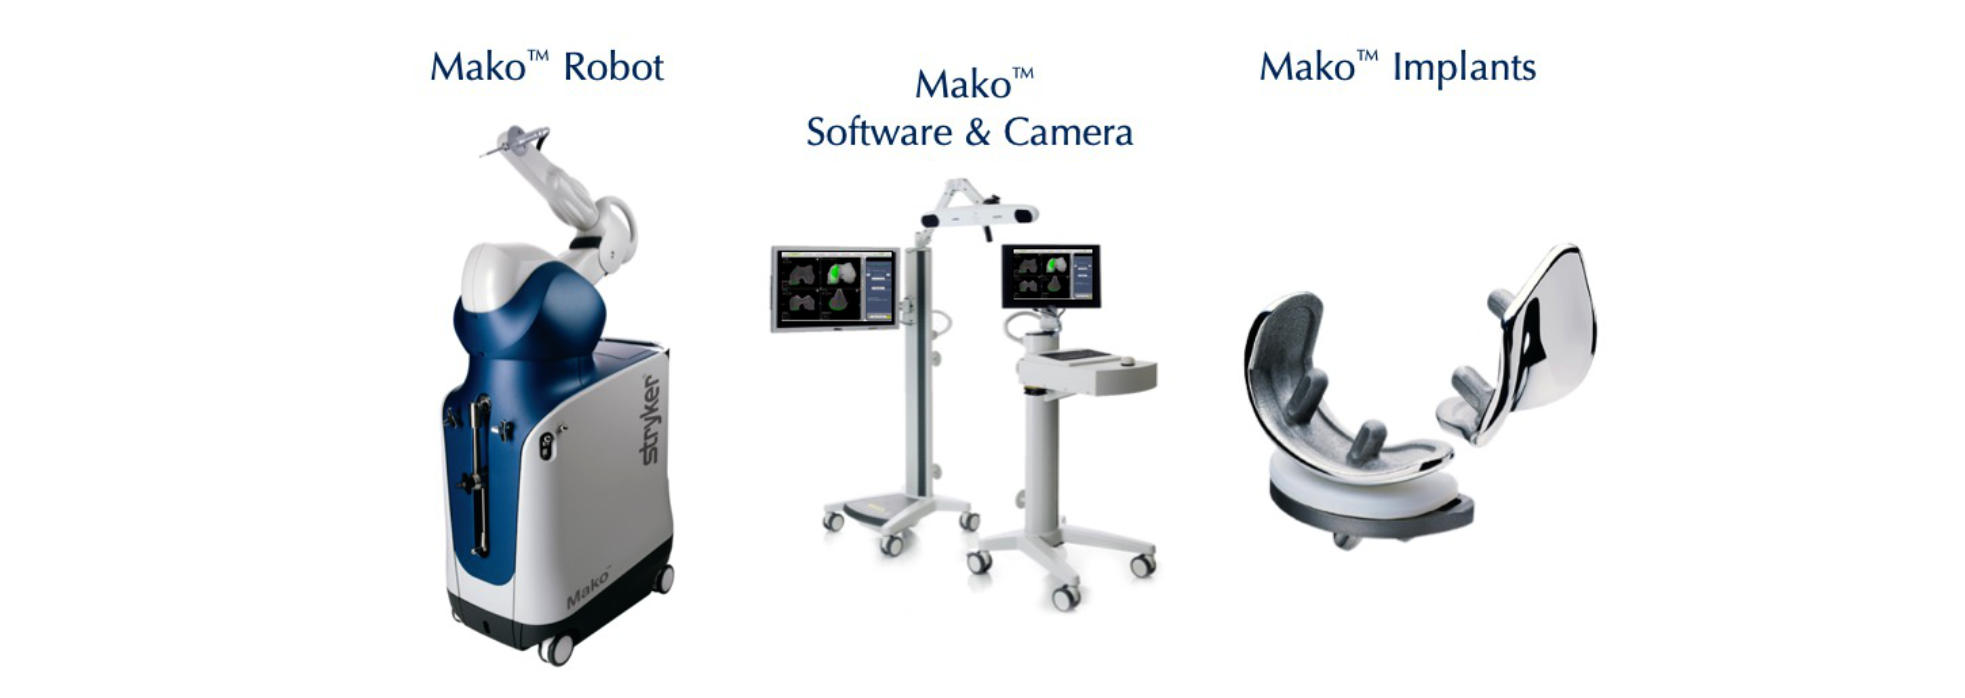 Mako Robotic Knee Replacement System and implants